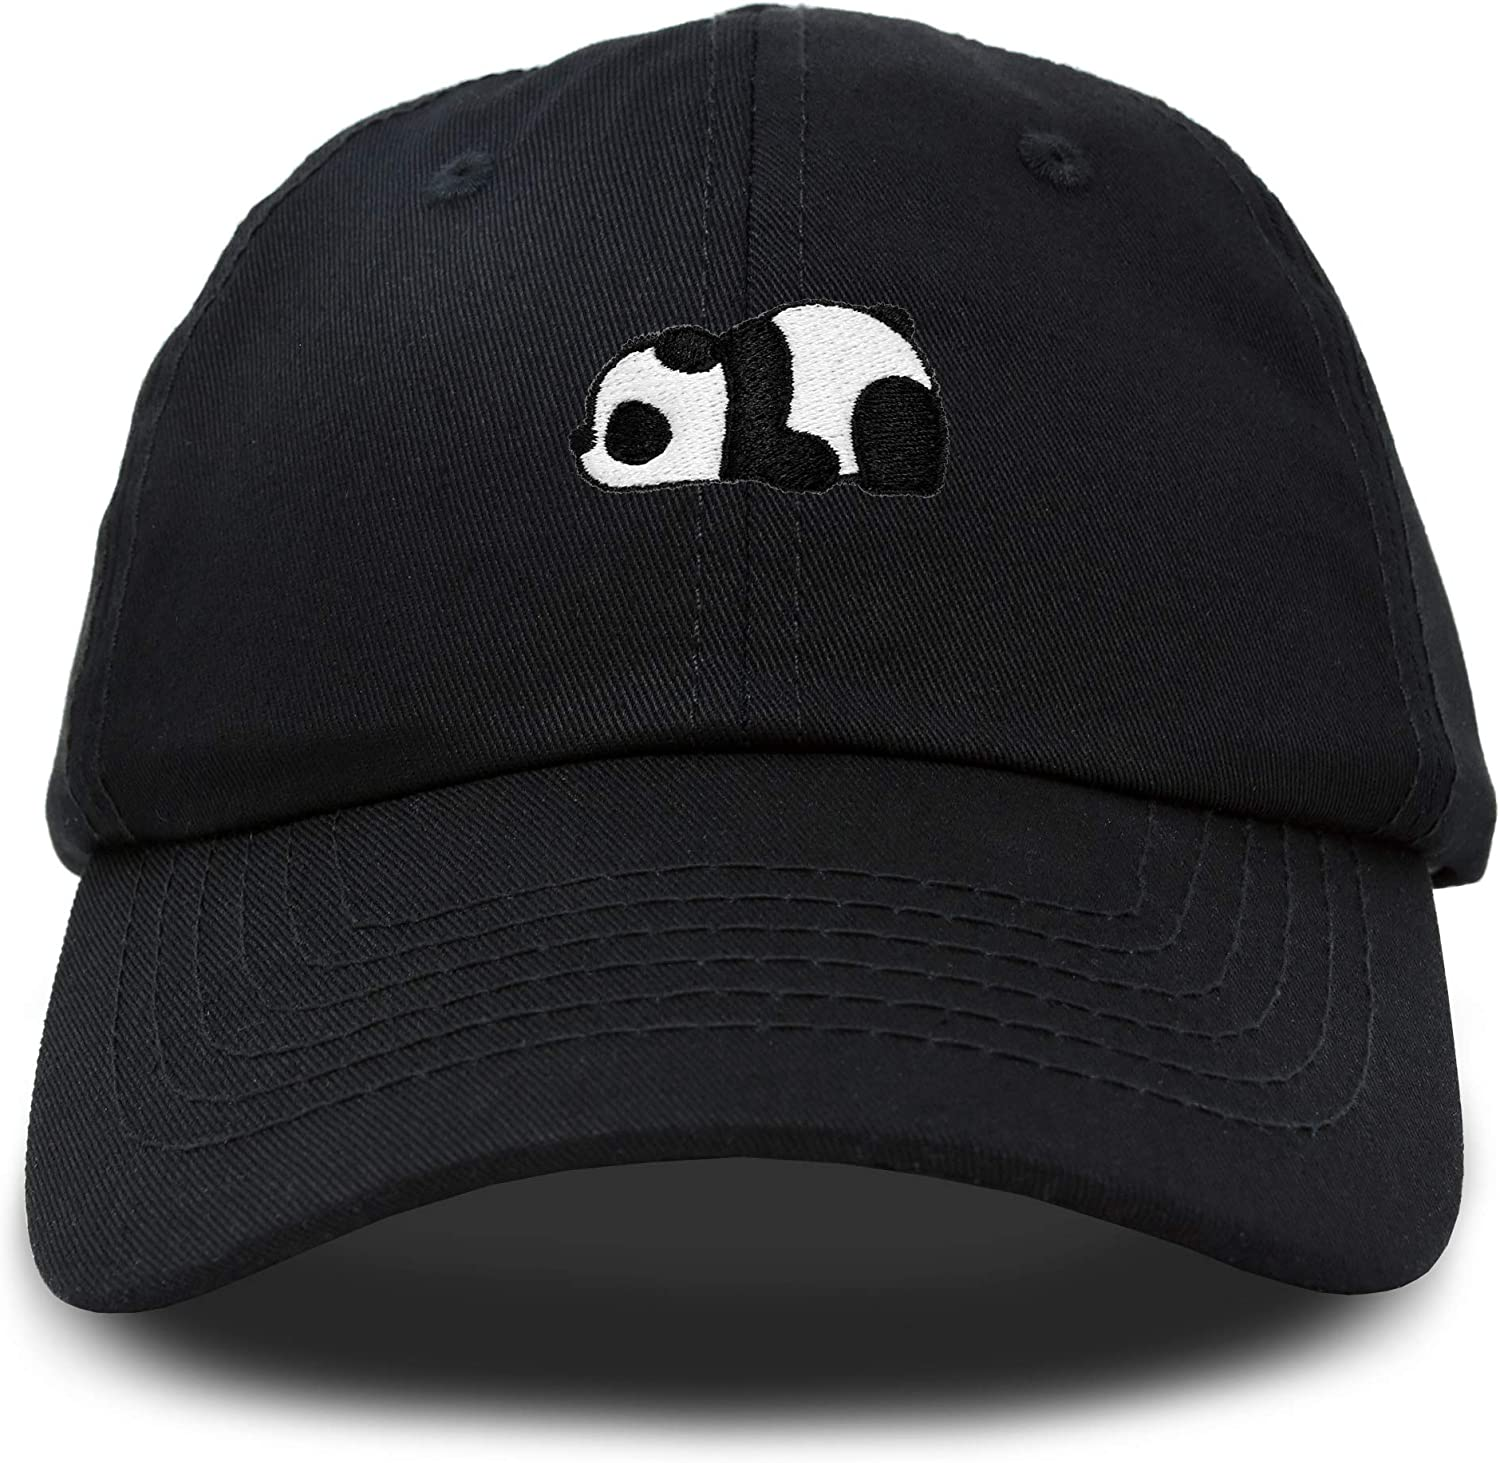 DALIX Cute Baby Panda Womens Dad Hat Baseball Cap Embroidered in Black: Clothing